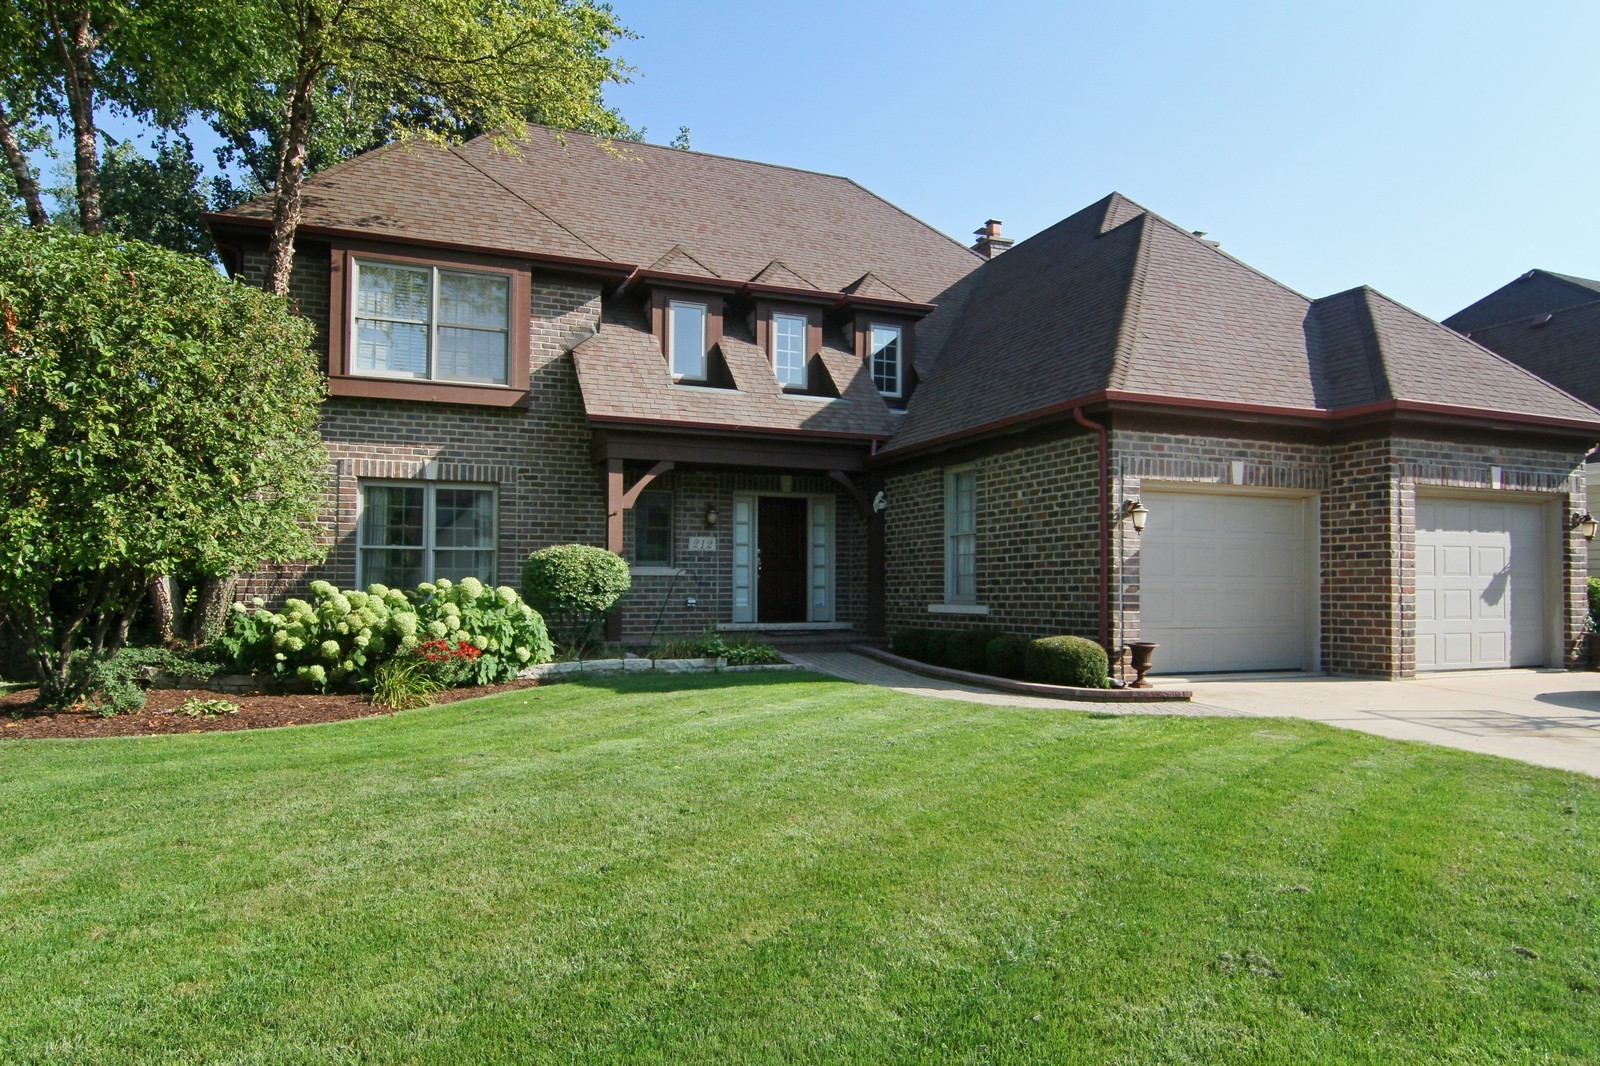 Real Estate Photography - 212 E 57th St, Westmont, IL, 60559 - Front View